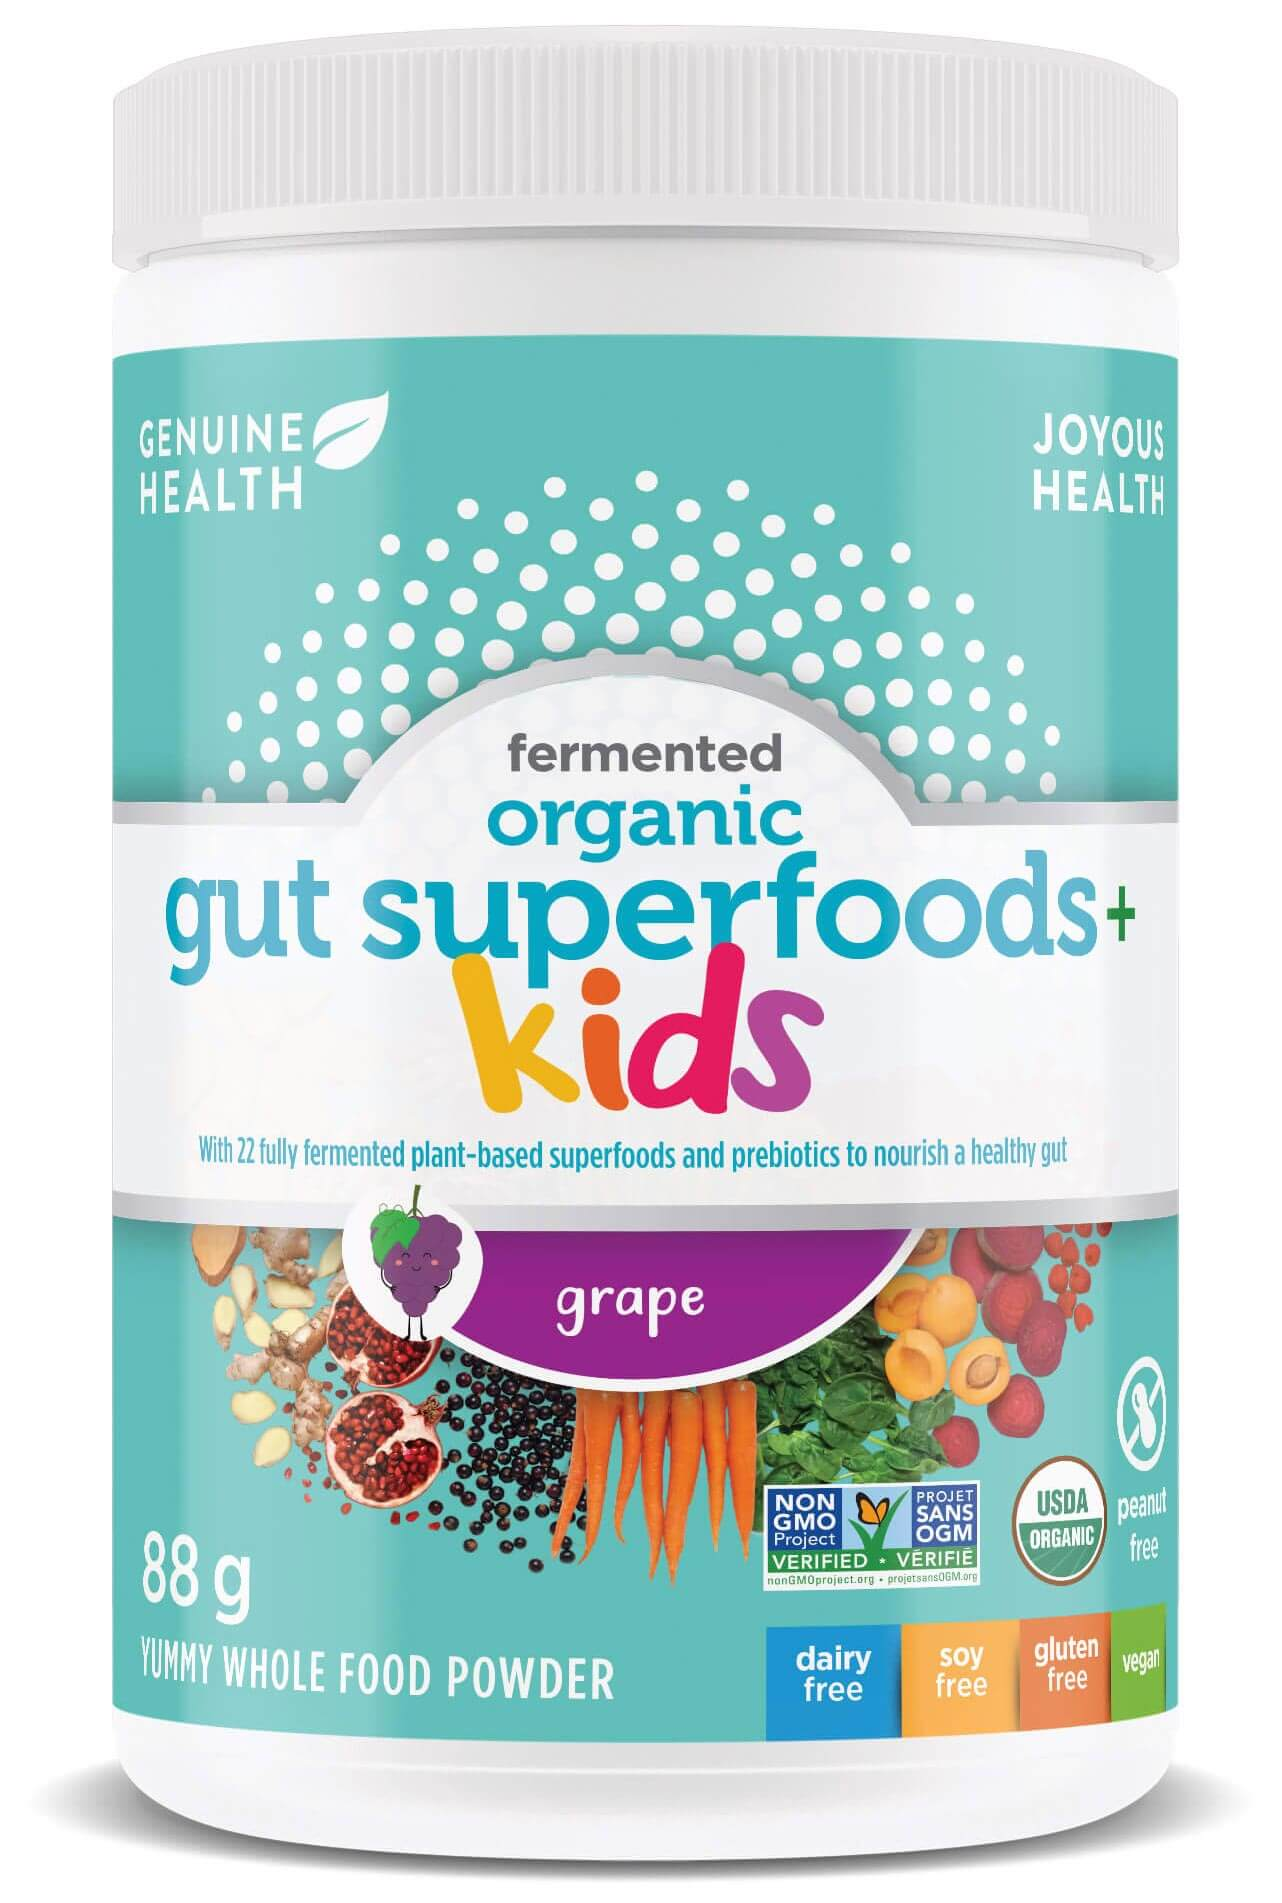 Joyous Health Genuine Health Kids Superfood Powder